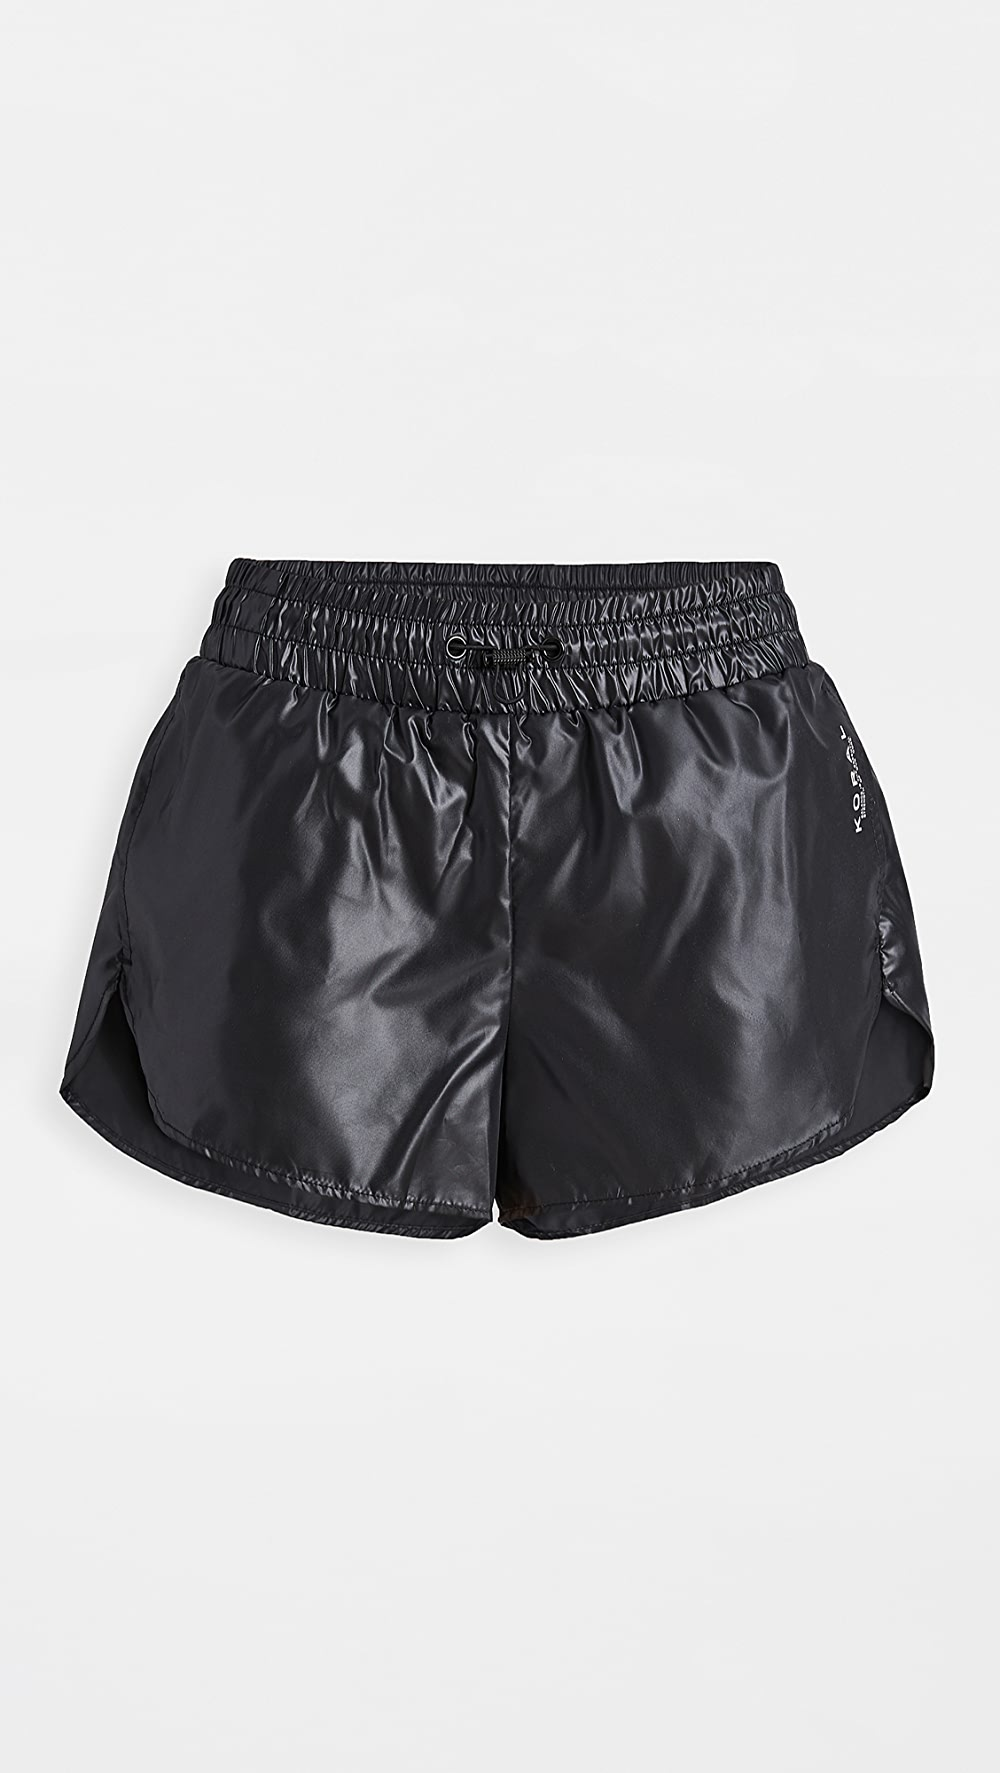 Amicable Koral Activewear - Prep Zephyr Shorts Non-Ironing